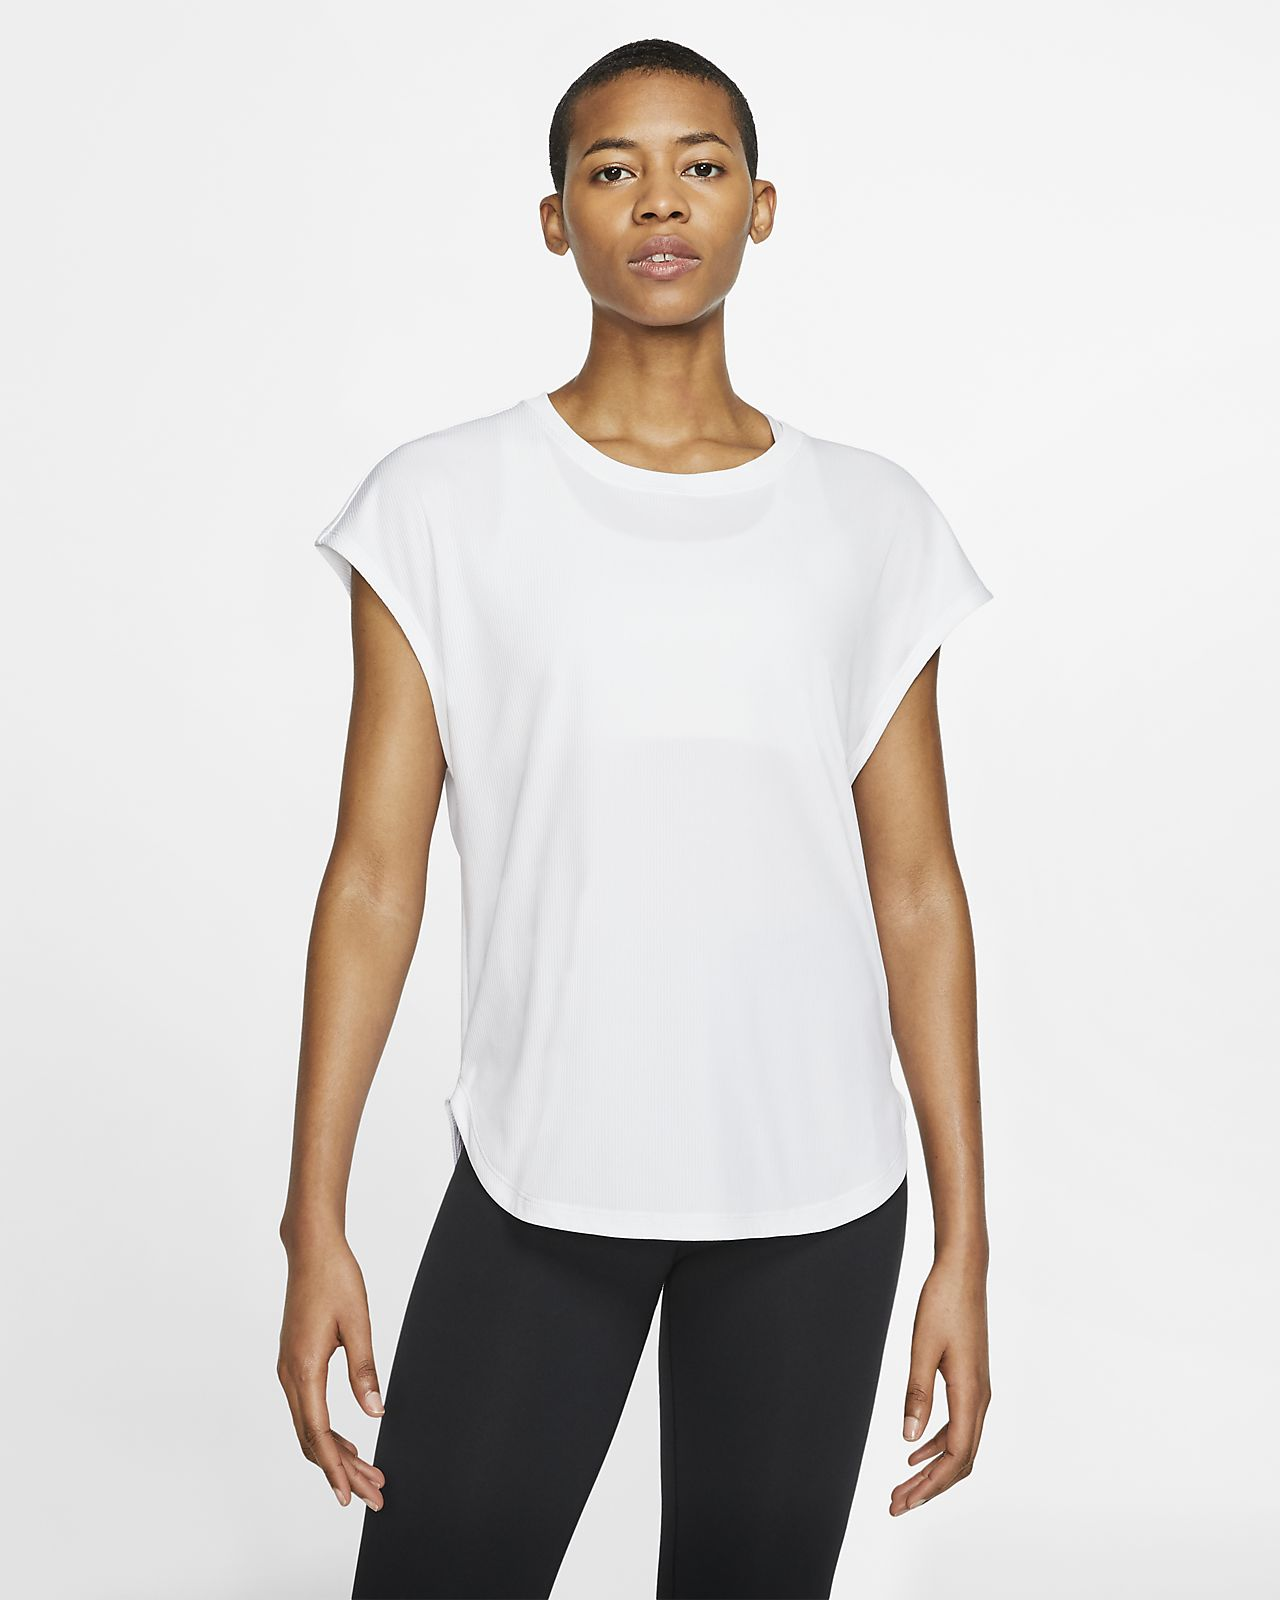 Nike Dri-FIT Women's Short-Sleeve Yoga Training Top